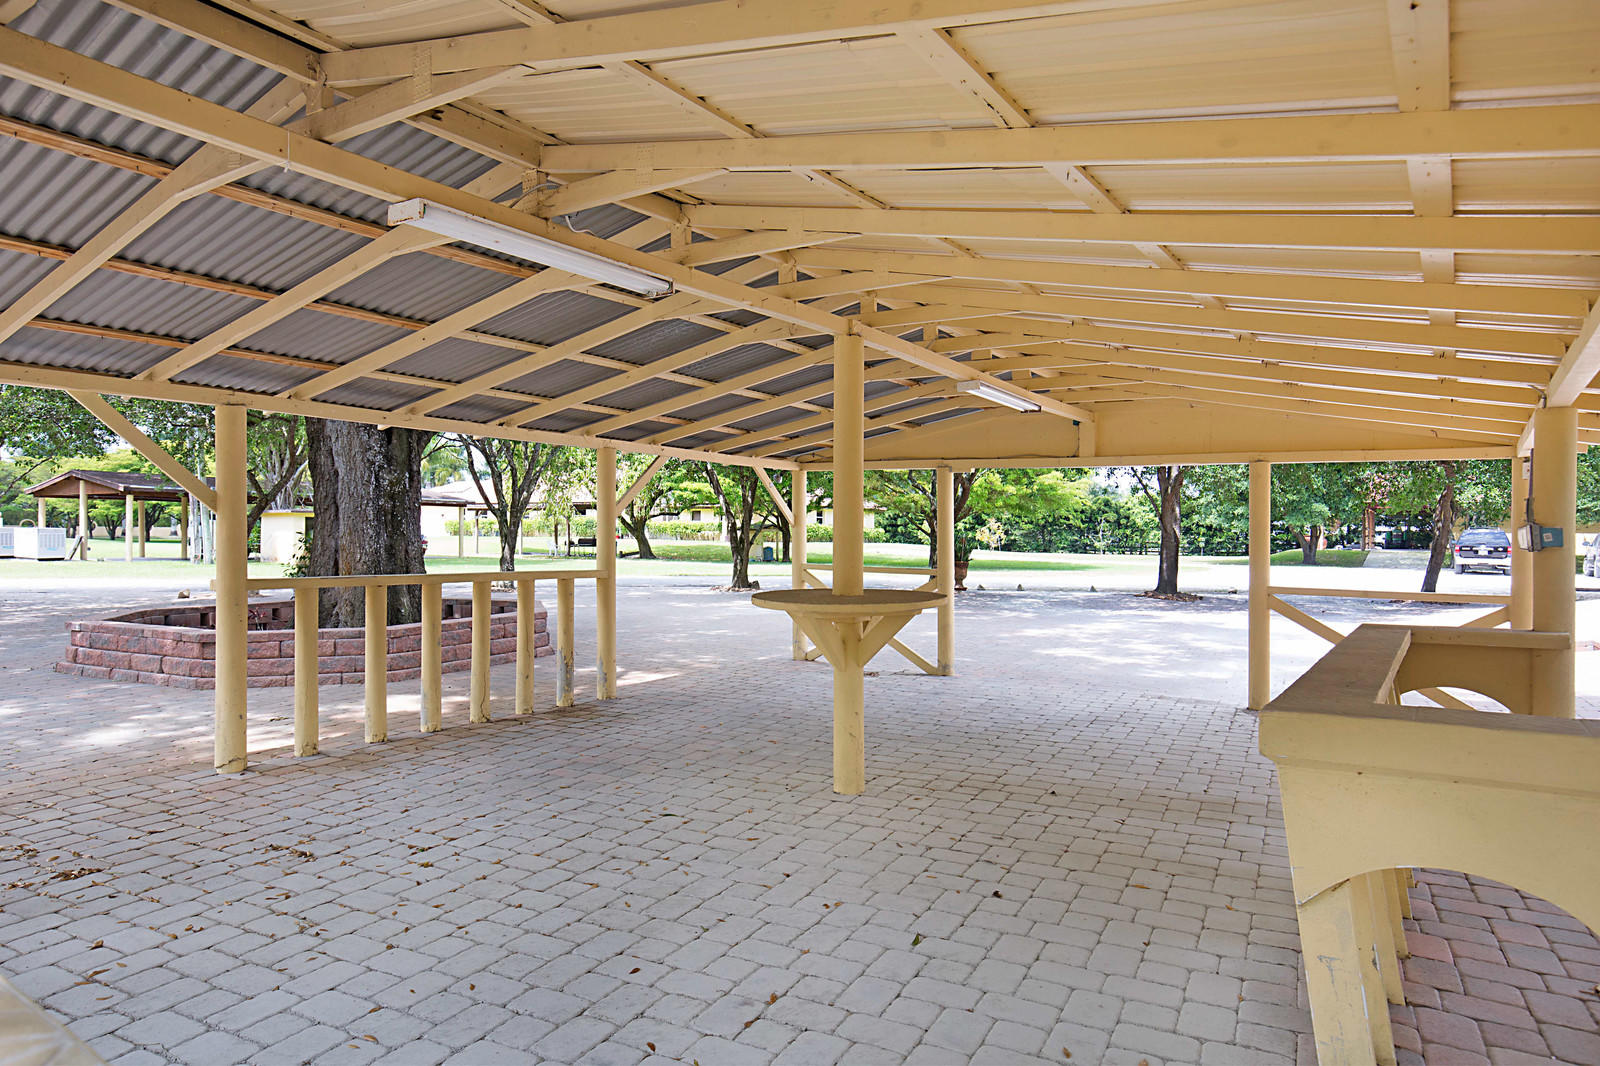 COVERED ENTERTAINMENT AREA